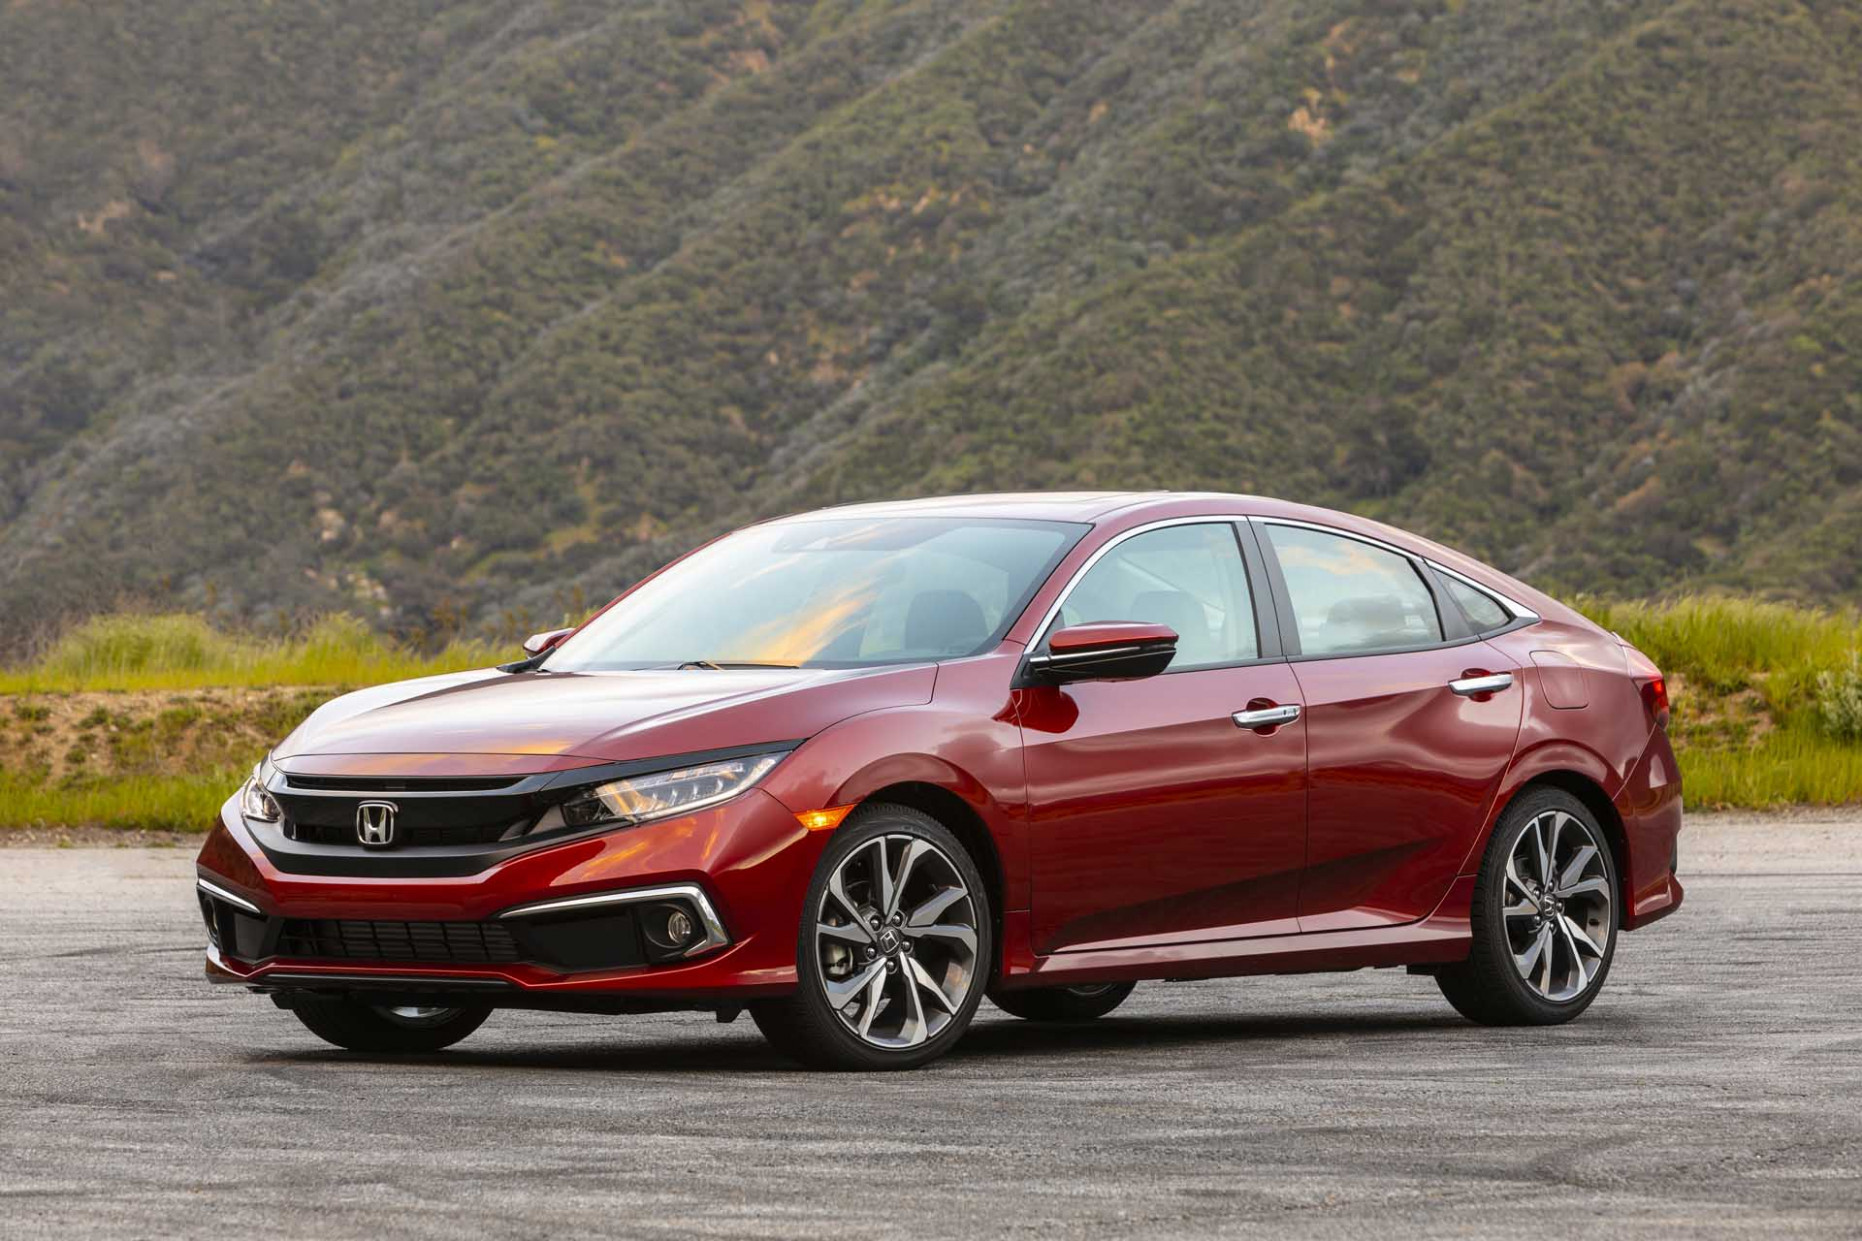 5 Honda Civic Review, Ratings, Specs, Prices, and Photos - The ..